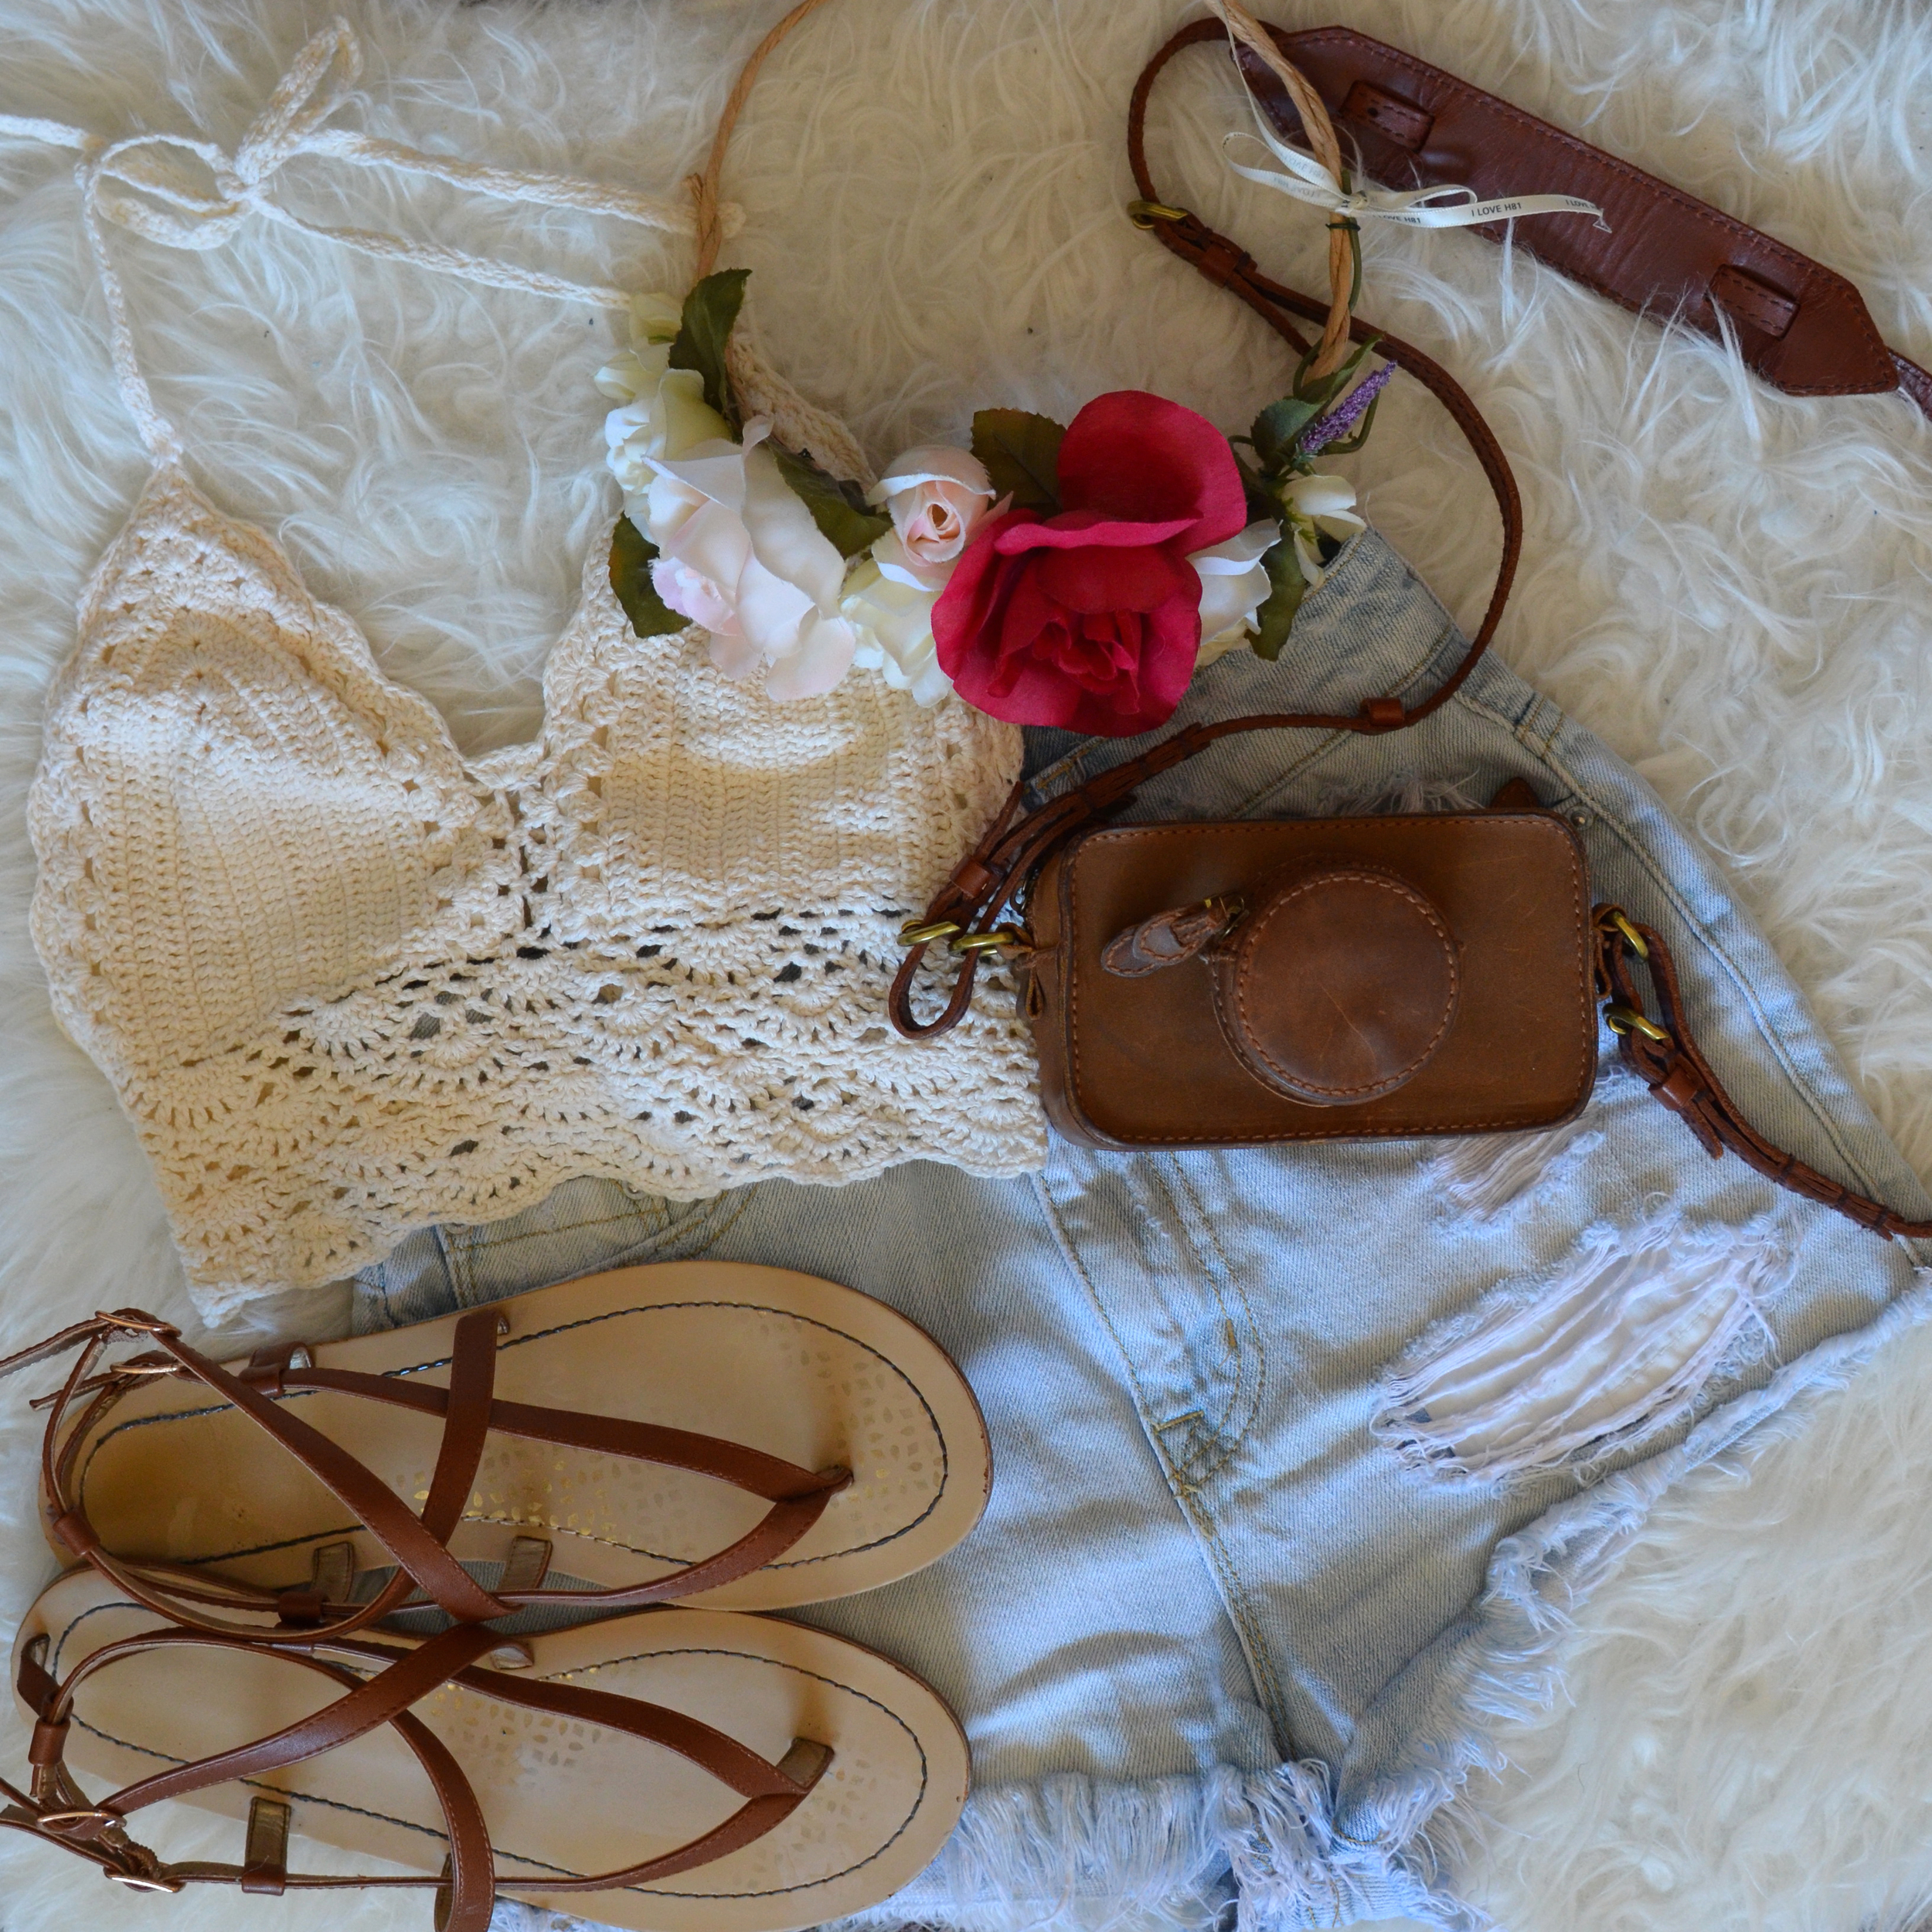 Top/Ebay, Bottoms/ Urban outfiters, Bag/Madewell, Flowercrown/DIY, Shoes/Target